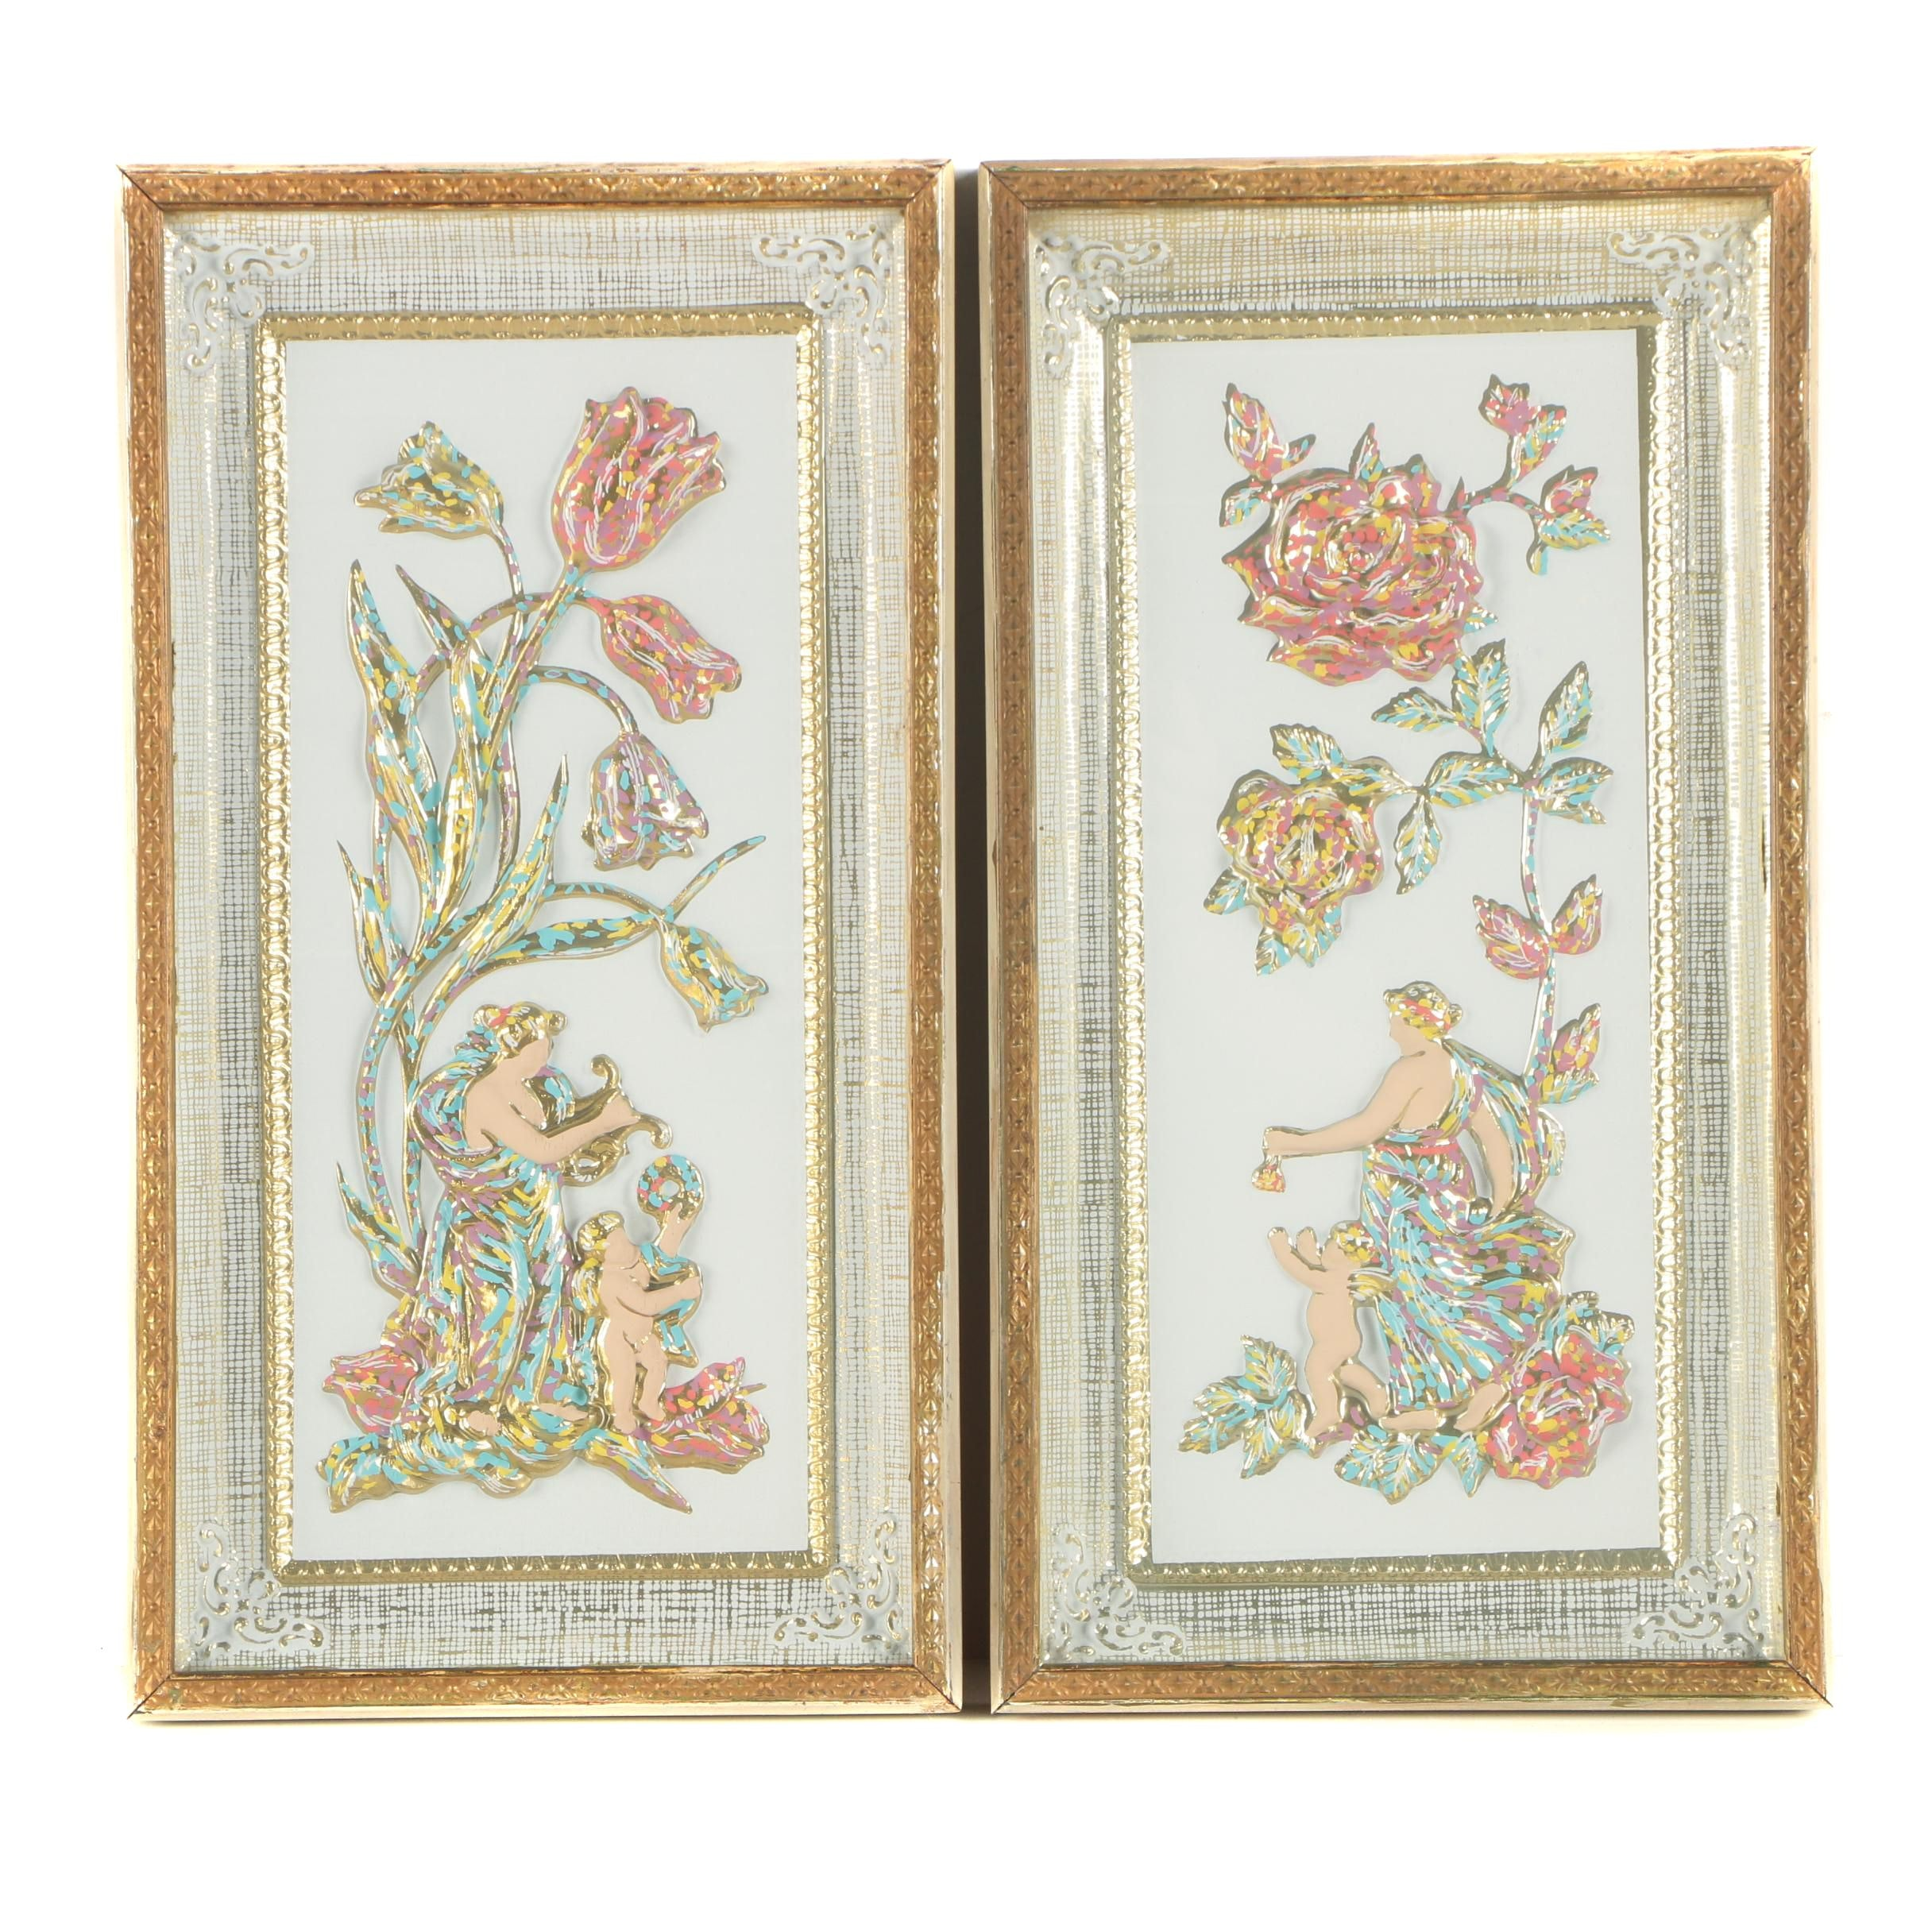 Vintage Decorative Wall Hangings in Relief